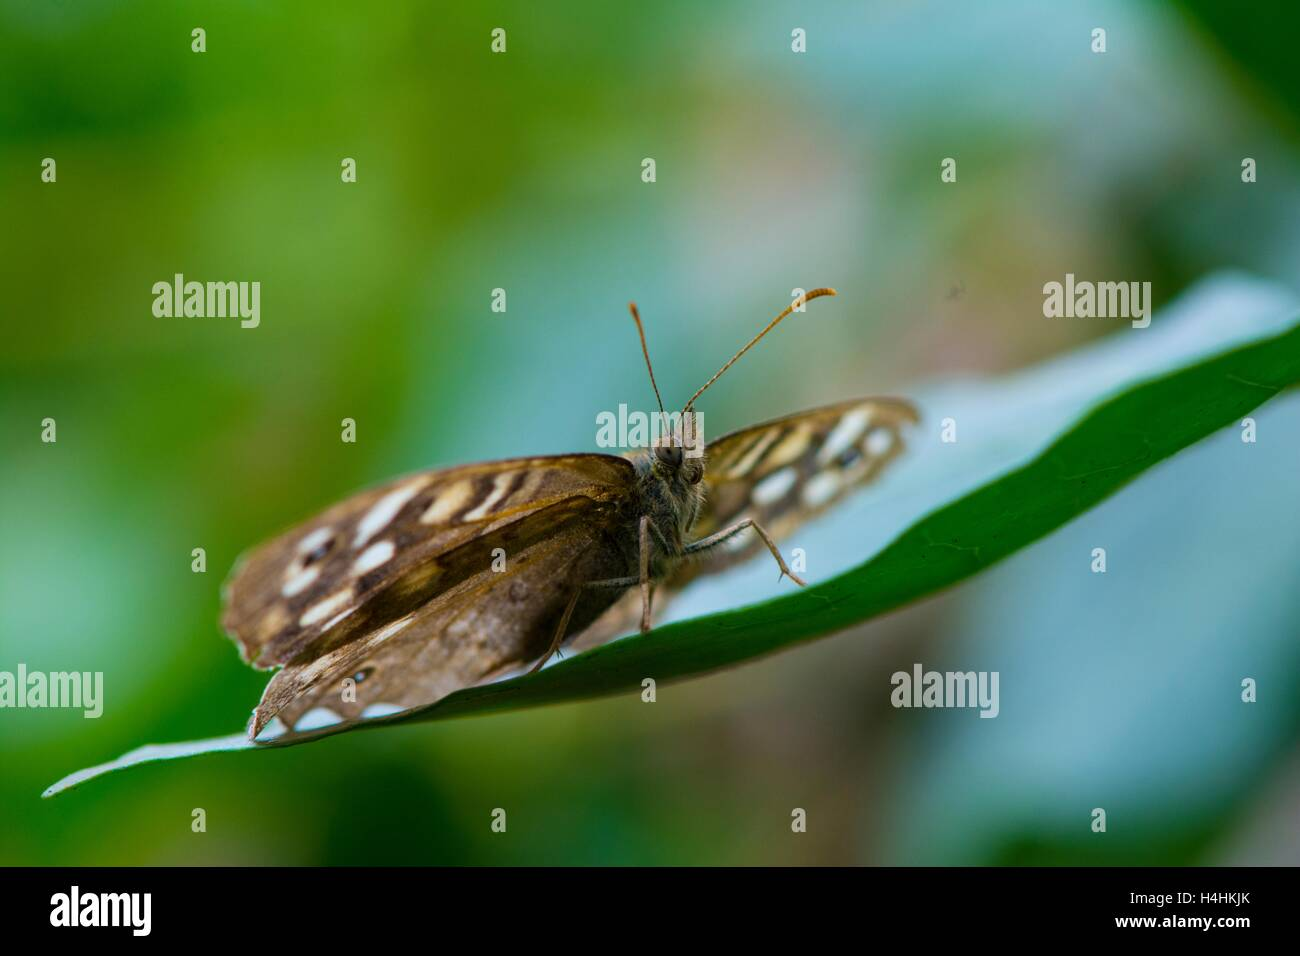 Speckled wood butterfly, Pararge aegeria. - Stock Image